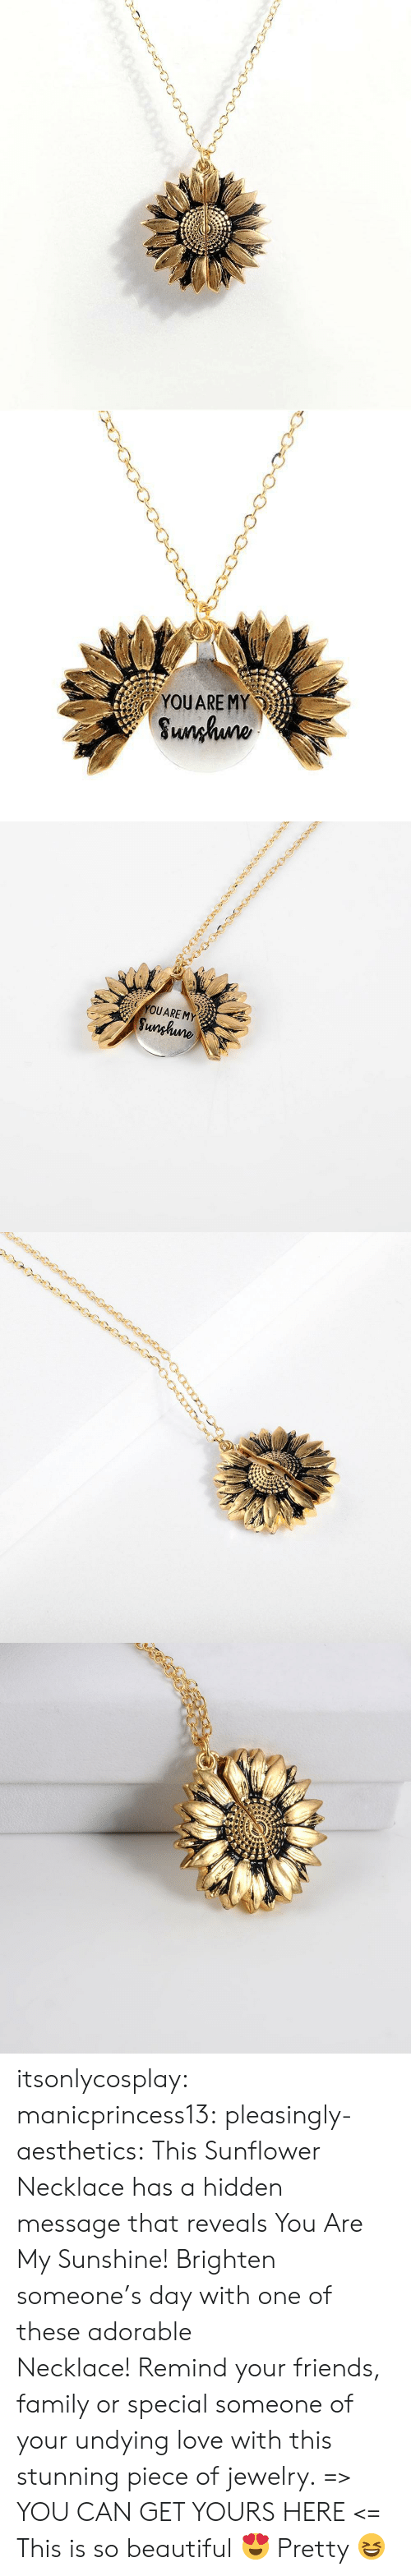 Beautiful, Family, and Friends: YOUARE MY  Sunhuno   YOUARE MY  Sunghune itsonlycosplay: manicprincess13:  pleasingly-aesthetics:  This Sunflower Necklace has a hidden message that reveals You Are My Sunshine! Brighten someone's day with one of these adorable Necklace!Remind your friends, family or special someone of your undying love with this stunning piece of jewelry. => YOU CAN GET YOURS HERE <=   This is so beautiful 😍    Pretty 😆